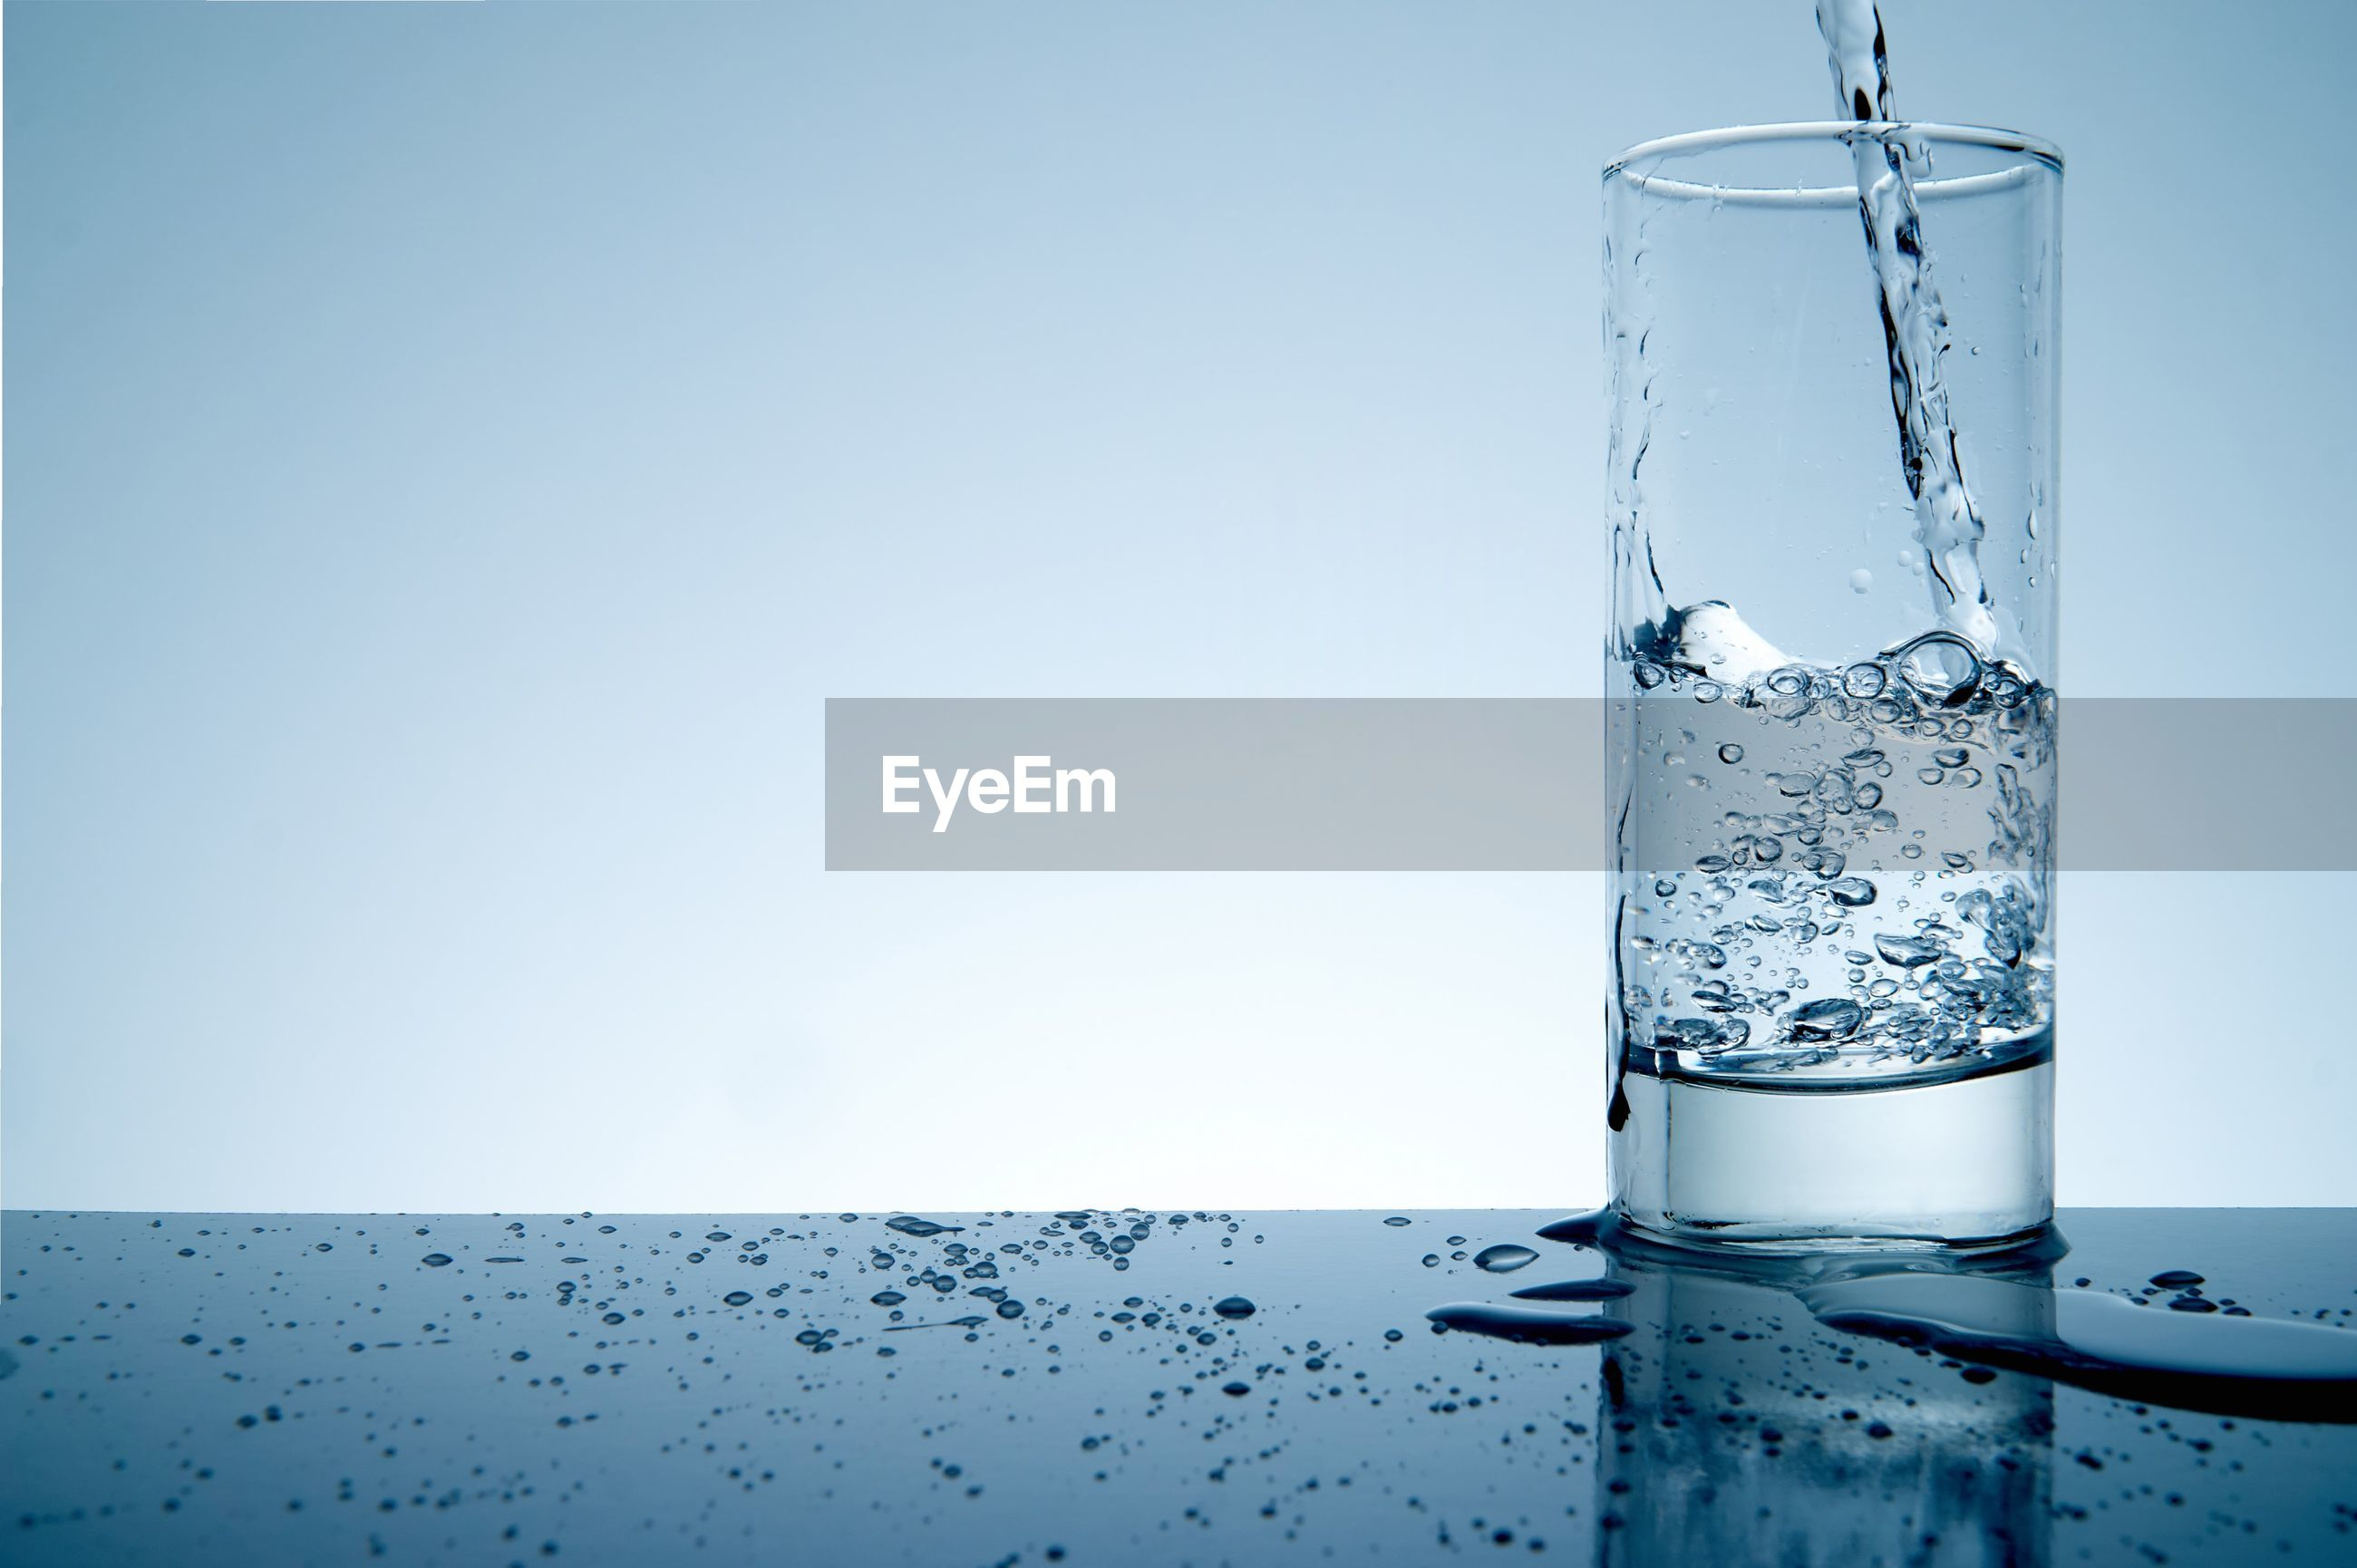 Water pouring in glass on table against white background